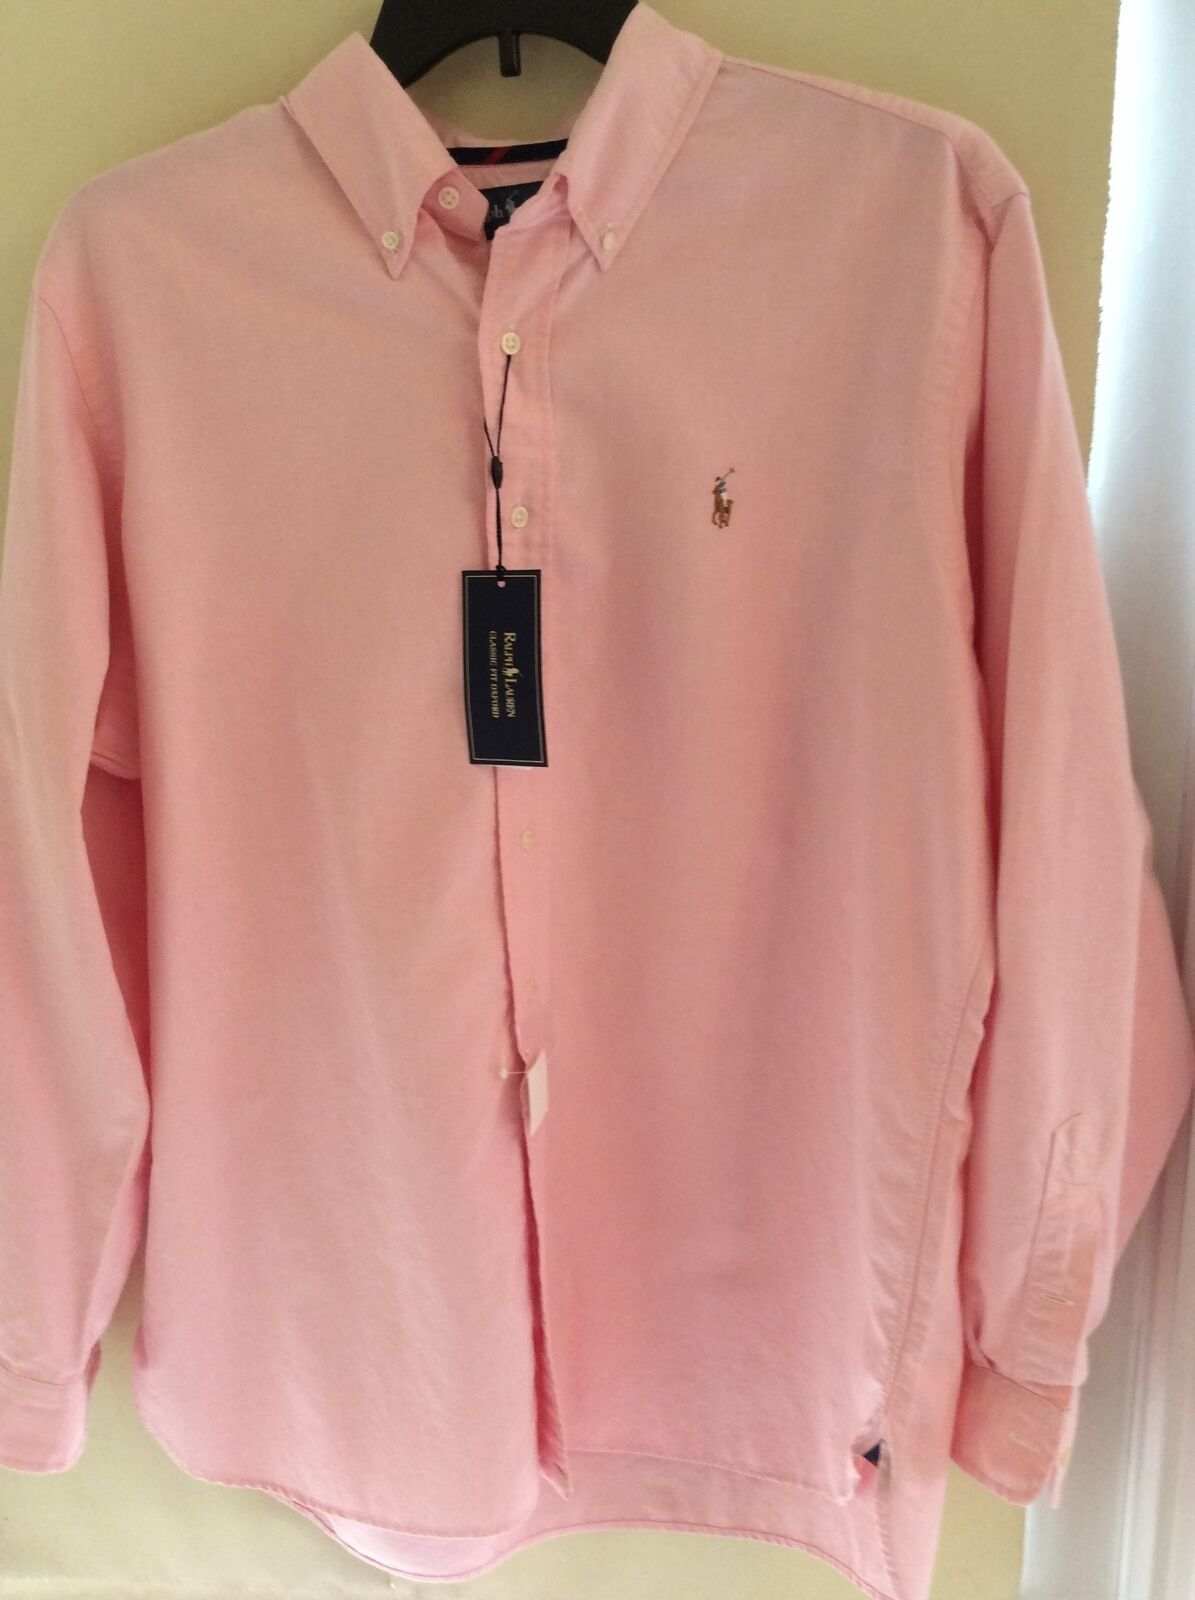 NEW RALPH LAUREN BUTTON SHIRT PINK COTTON BROADCLOTH CLASSIC LONG SLEV PONY 2XL